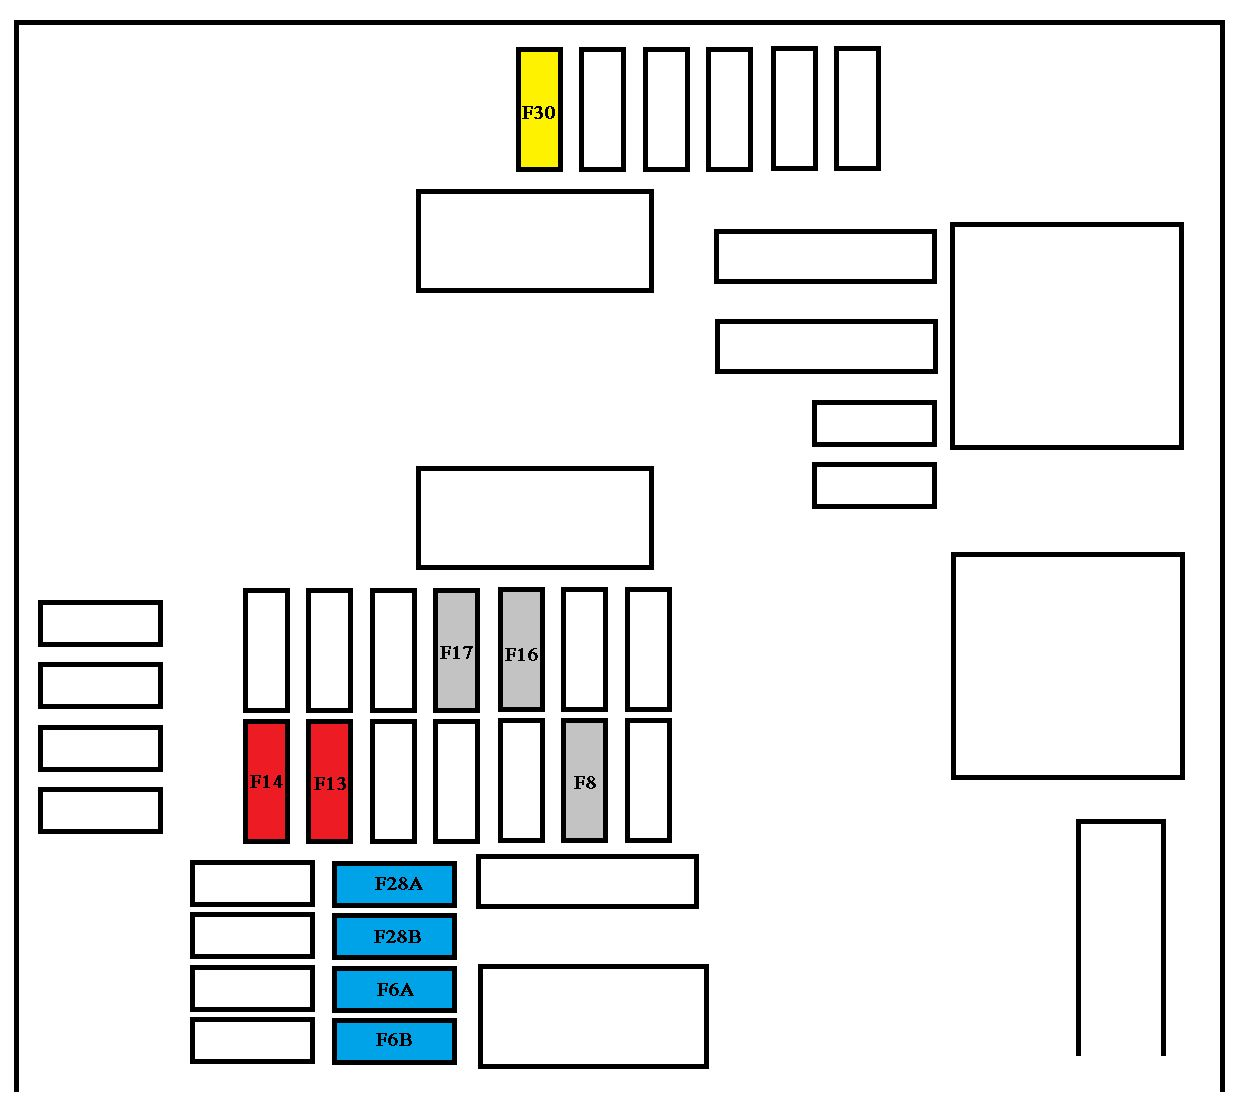 Peugeot 5008 Fuse Box Layout Wiring Diagram Libraries 407 Map Todayspeugeot Schematic